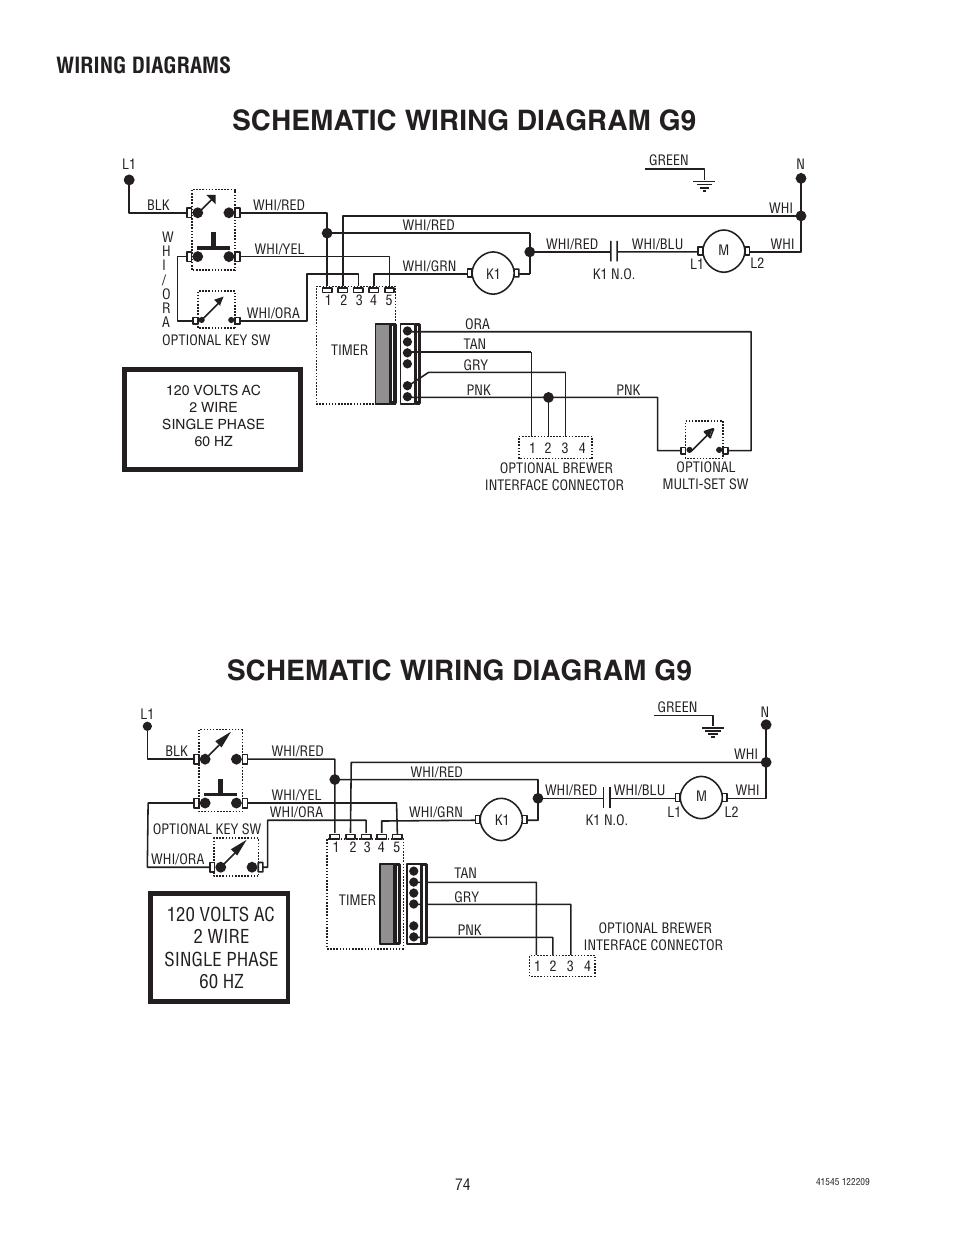 hight resolution of schematic wiring diagram g9 wiring diagrams bunn g9 2t dbc userschematic wiring diagram g9